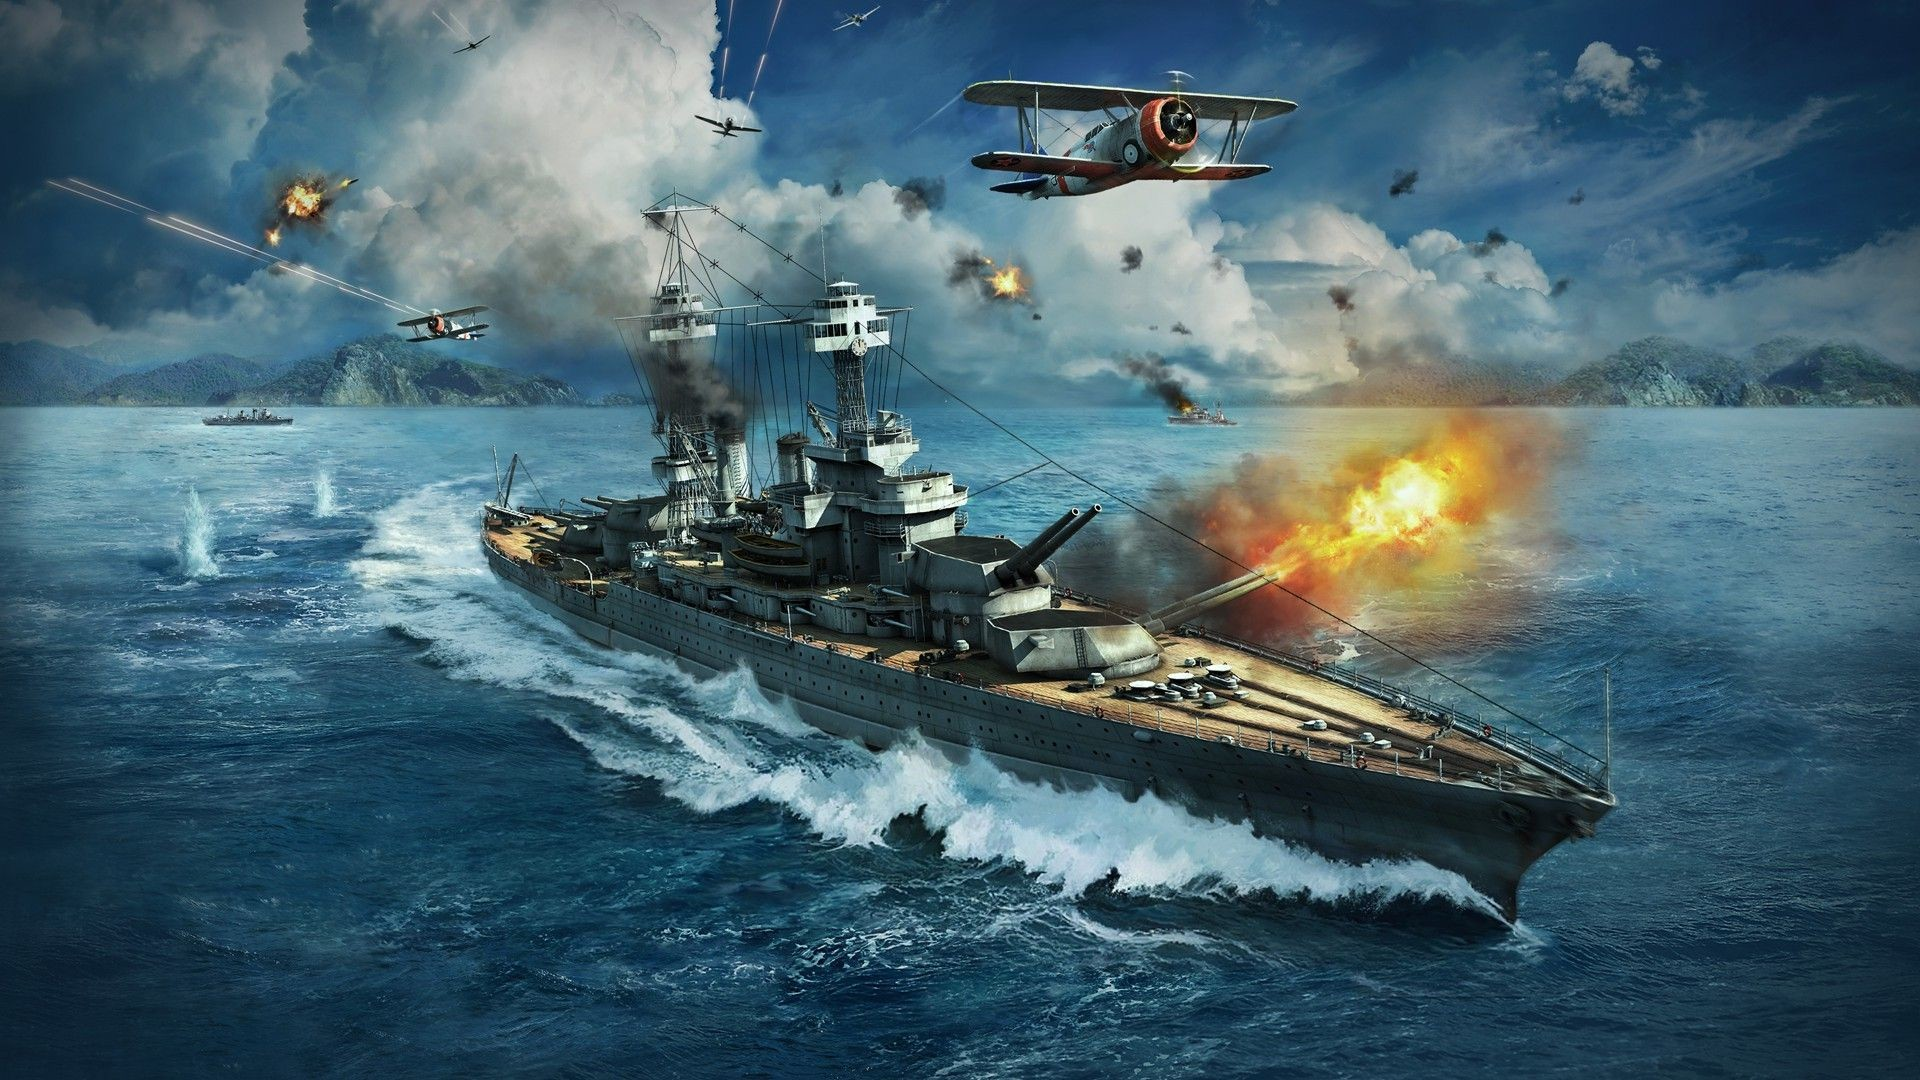 World of warships download free pc | Aimbot World of Warships  2019